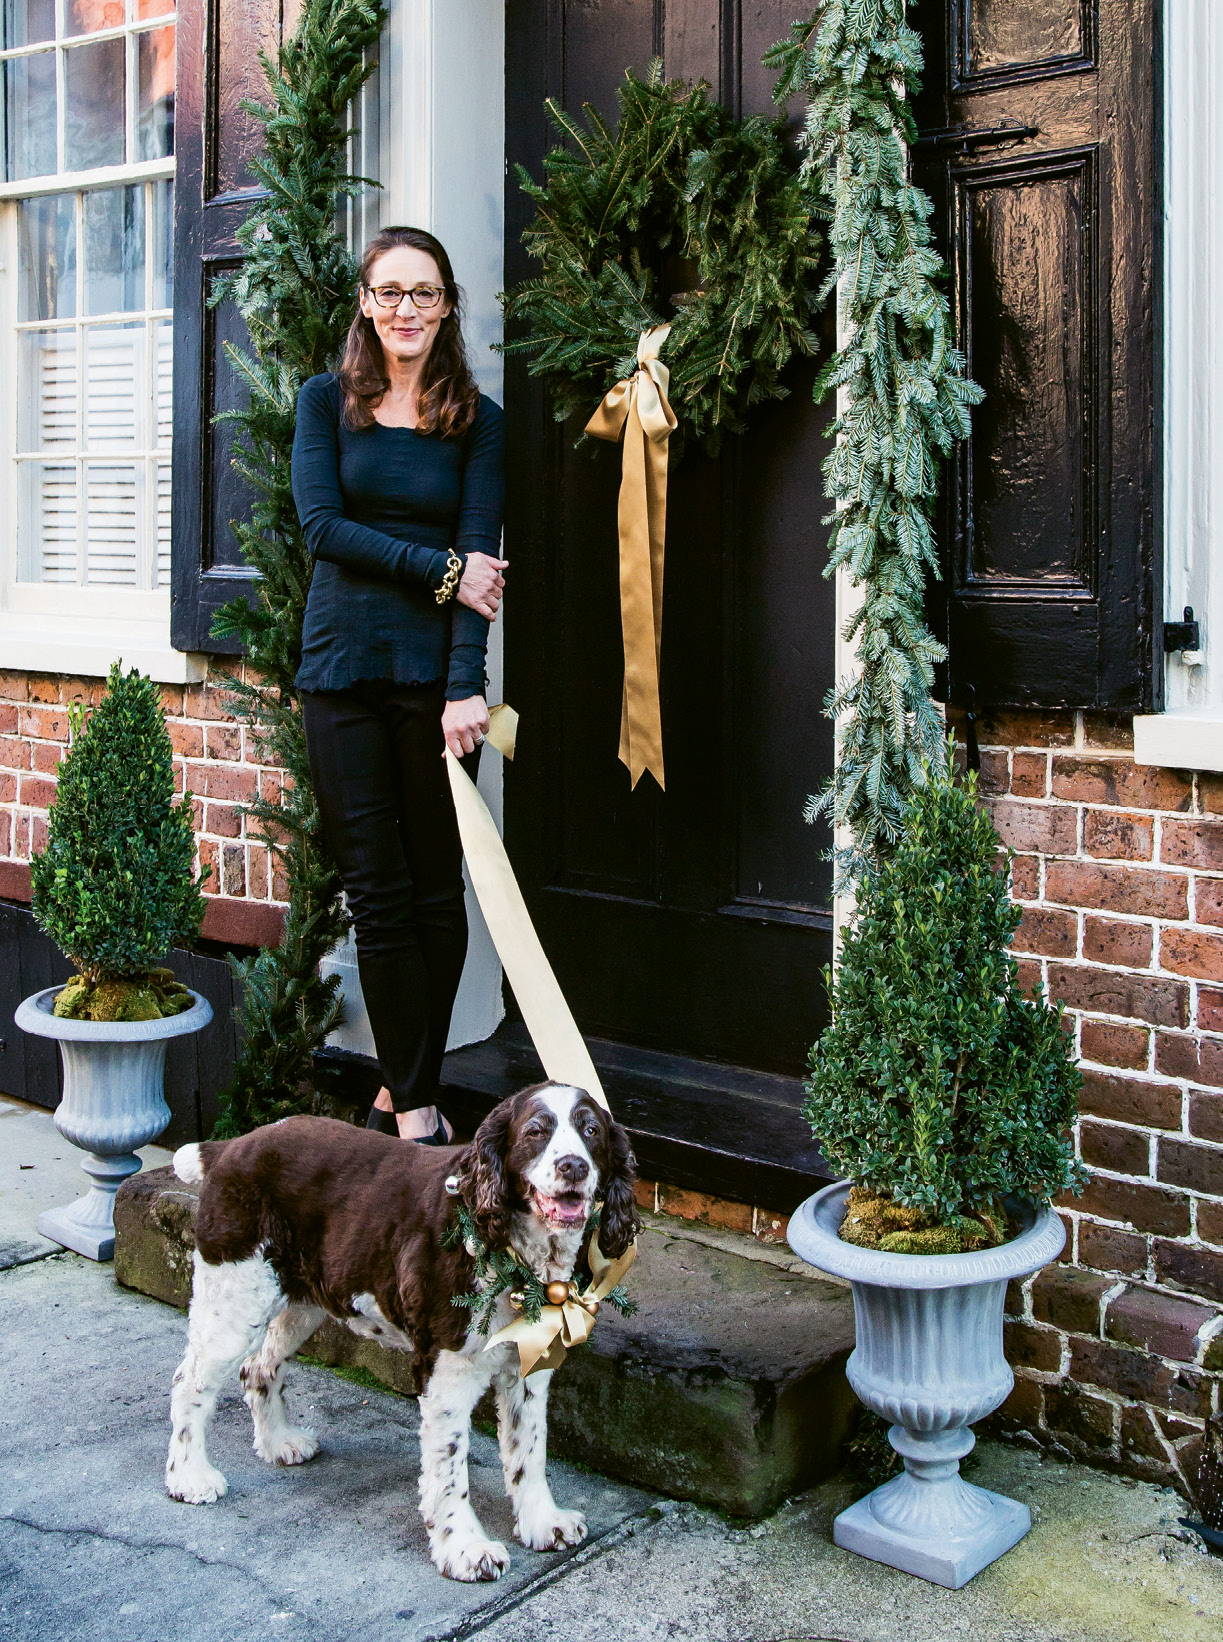 WELCOME HOME: Tara and her English springer spaniel, Georgia, greet guests as they arrive to their Tradd Street home.